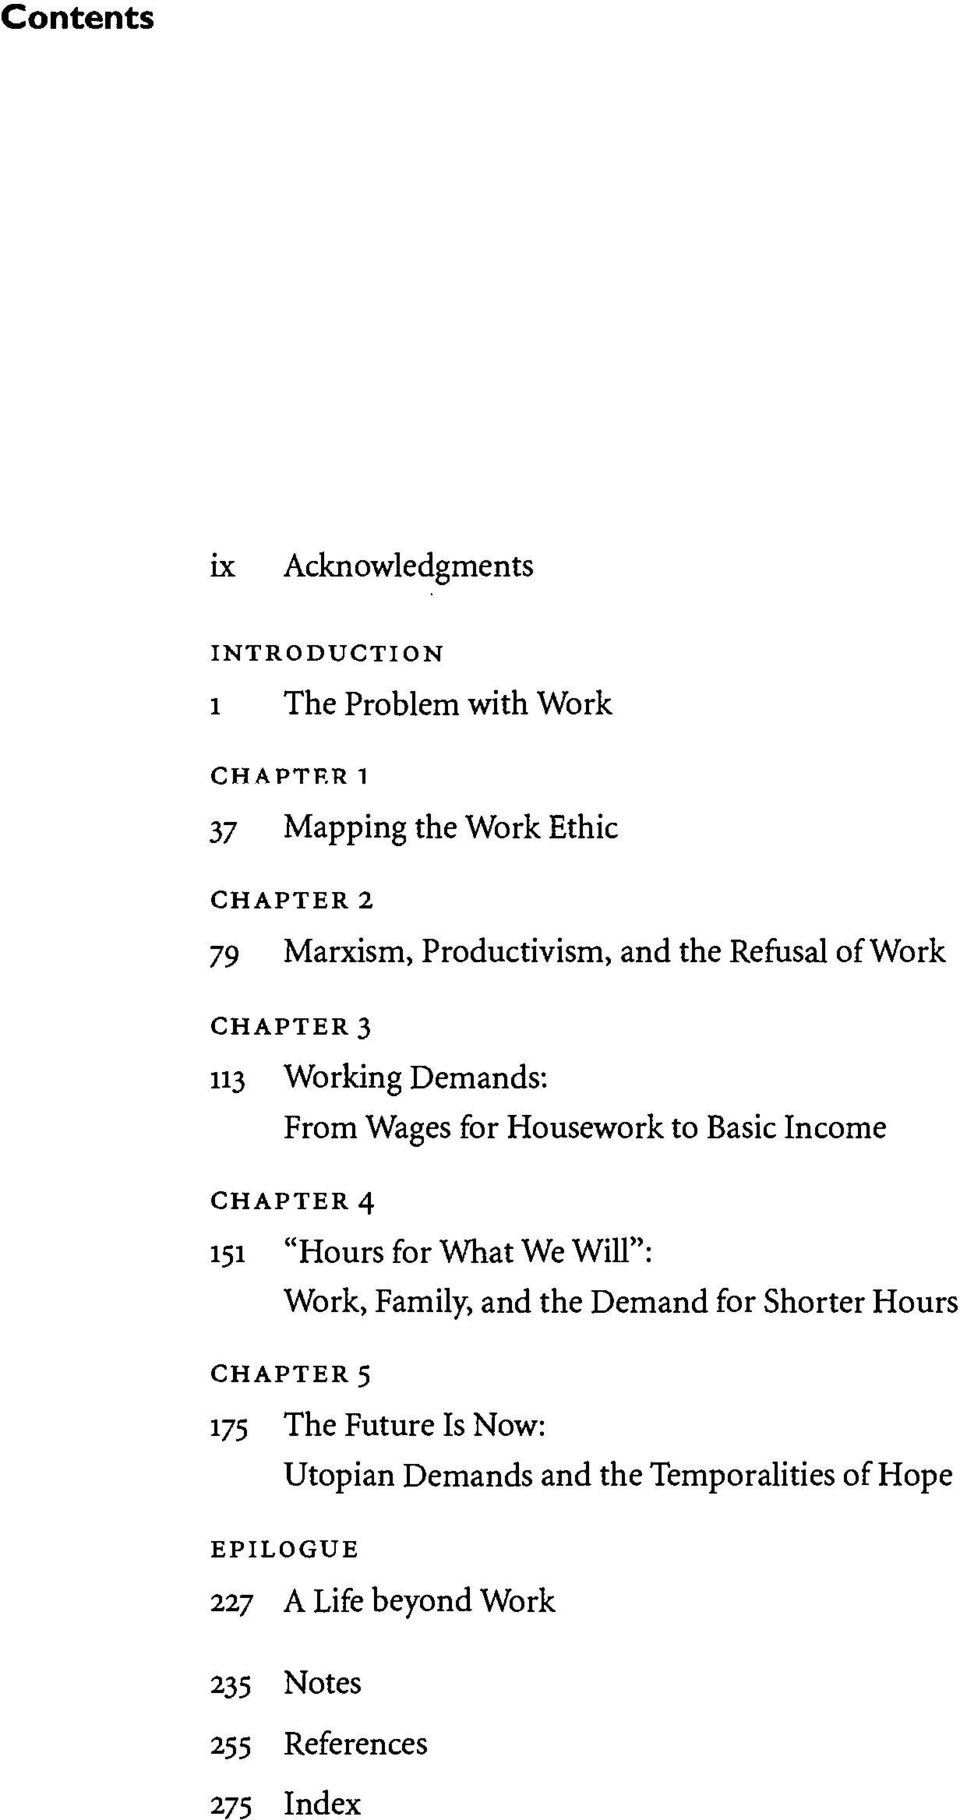 "Income CHAPTER 4 151 ""Hours for What We Will"": Work, Family, and the Demand for Shorter Hours CHAPTER 5 175 The"